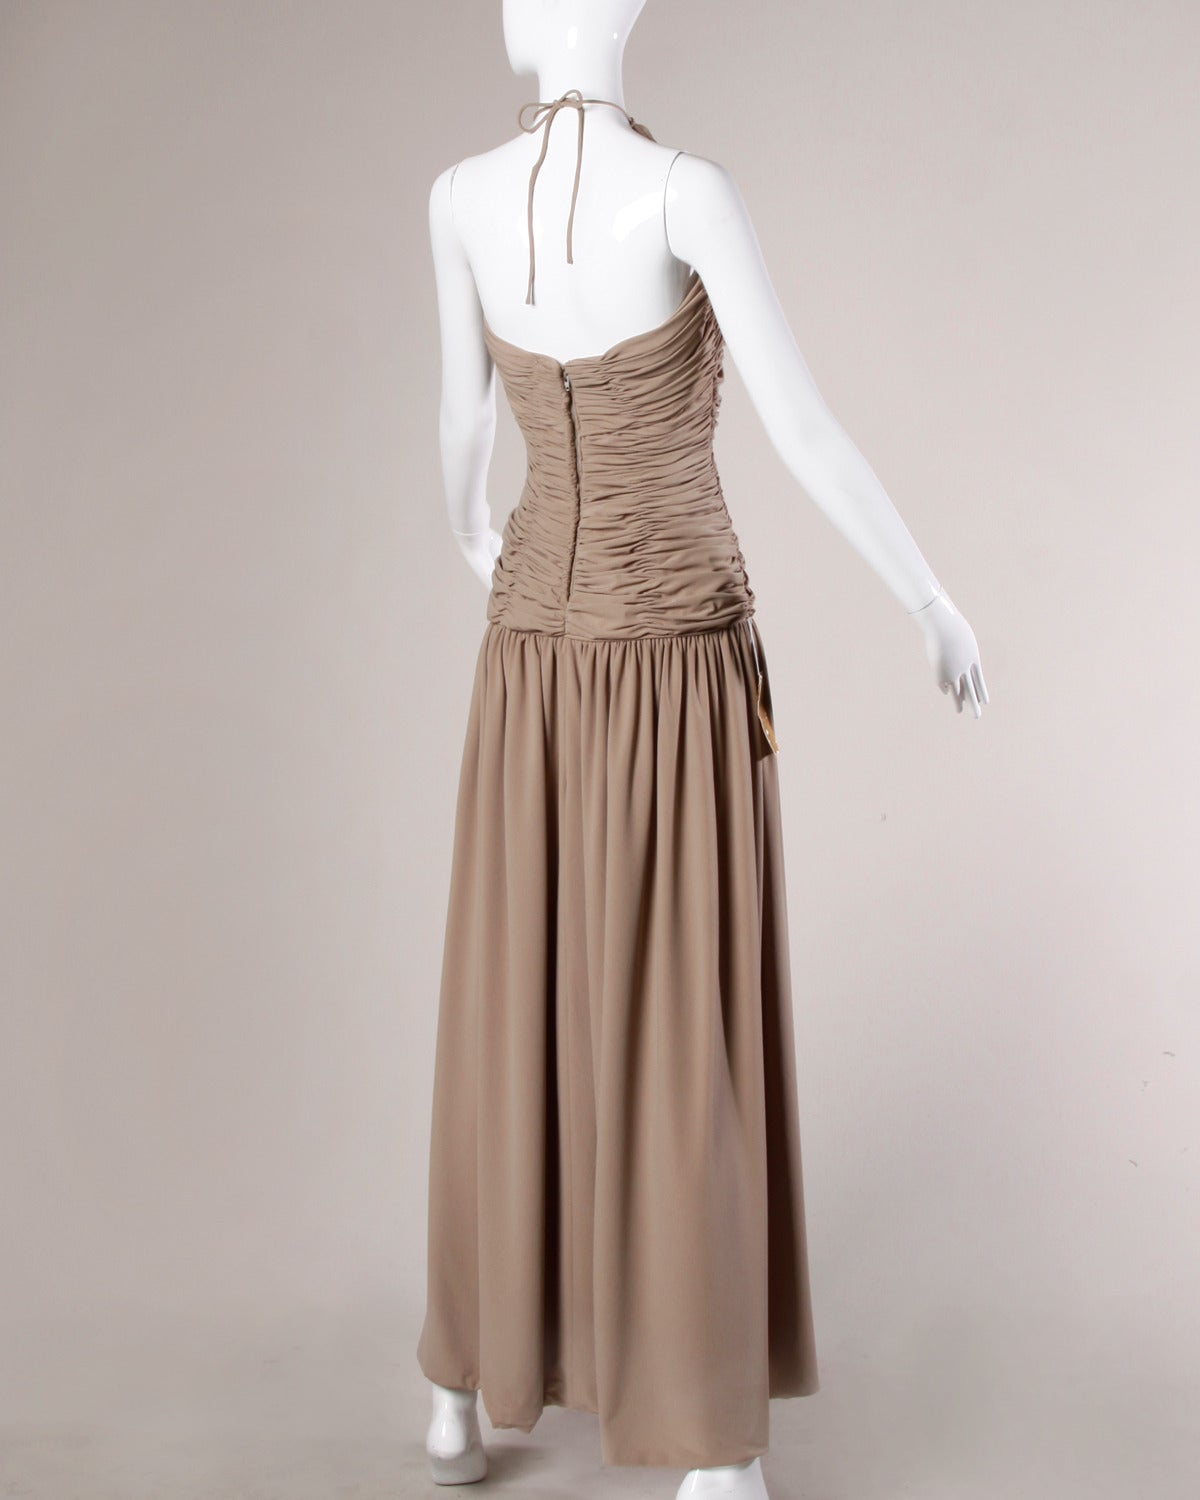 Victor Costa Deadstock Vintage Nude Halter Dress with Original Tags In New Condition For Sale In Sparks, NV